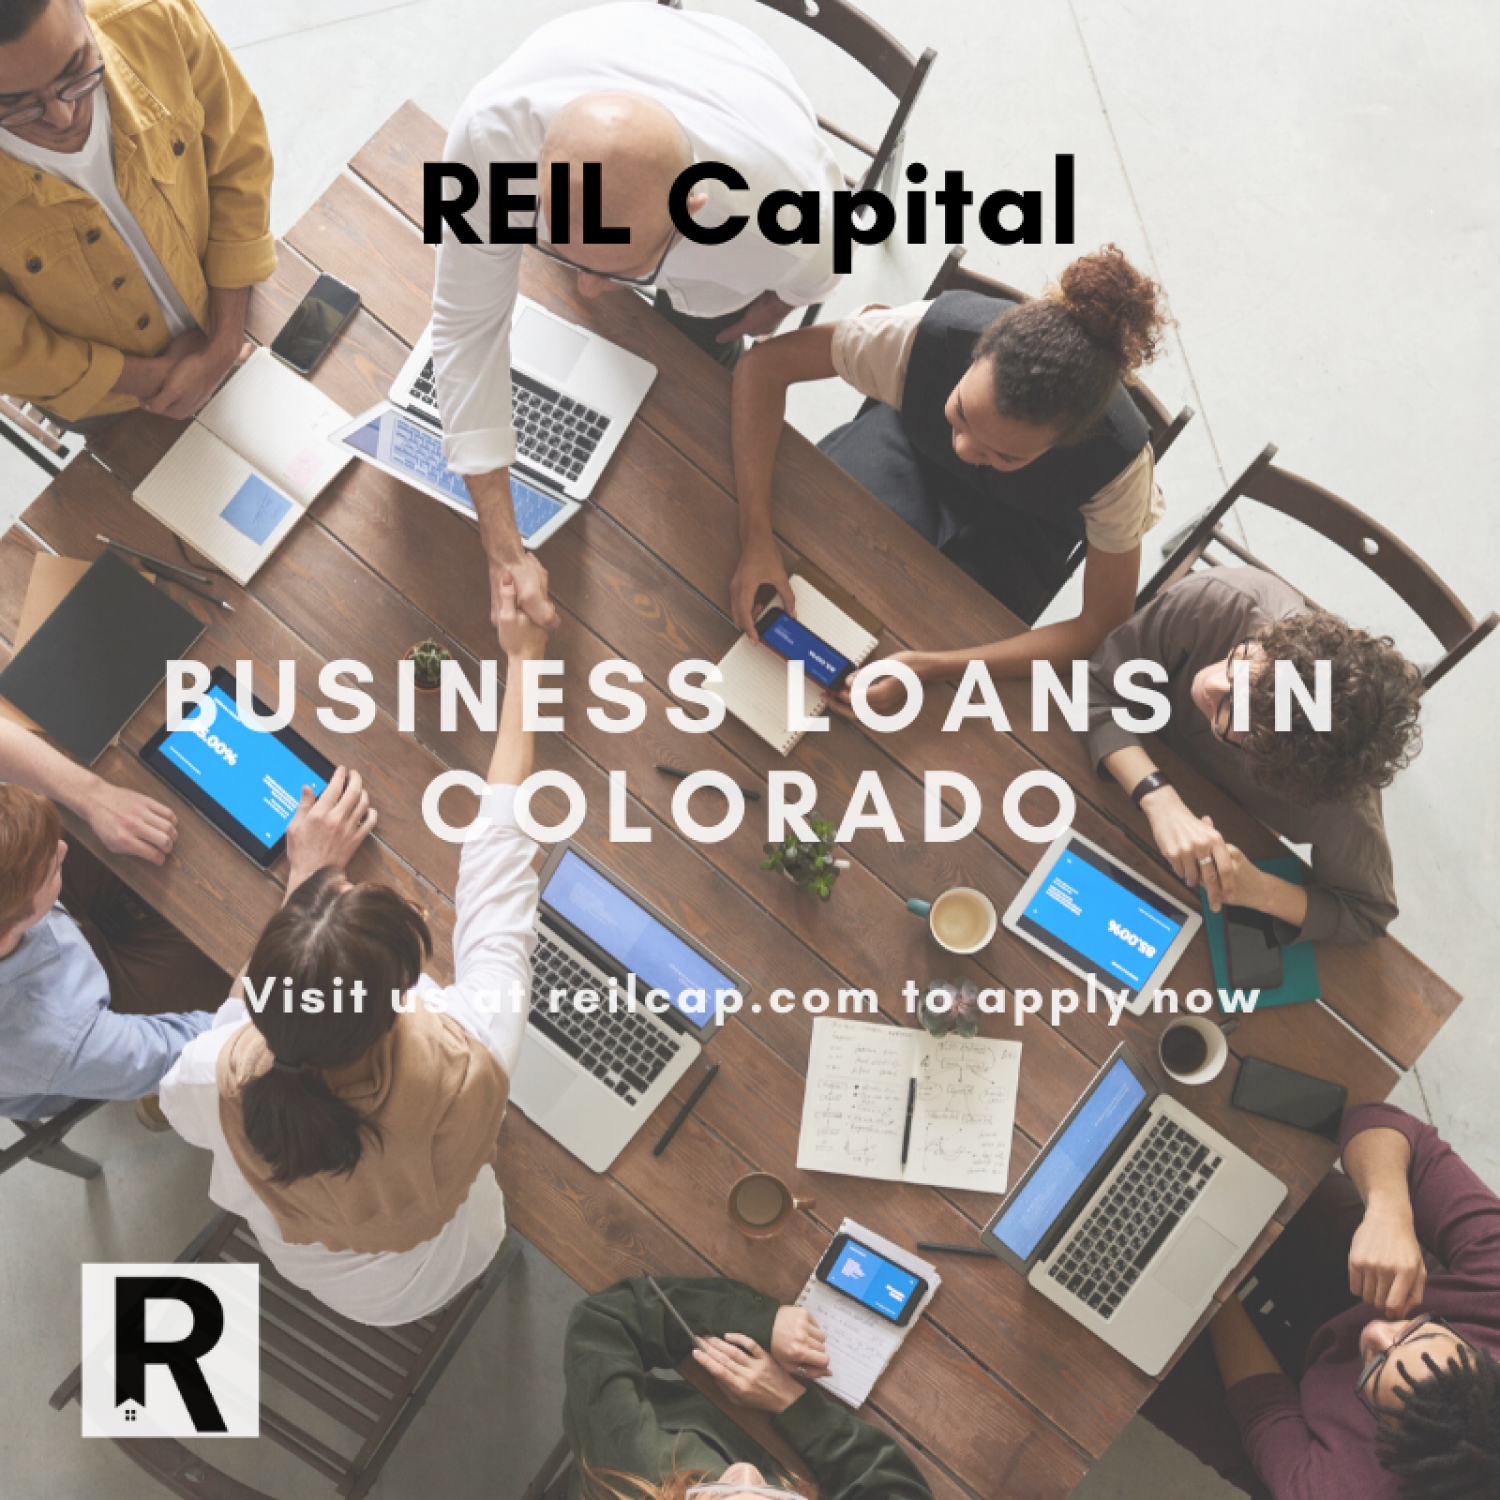 Business Loans in Colorado Infographic